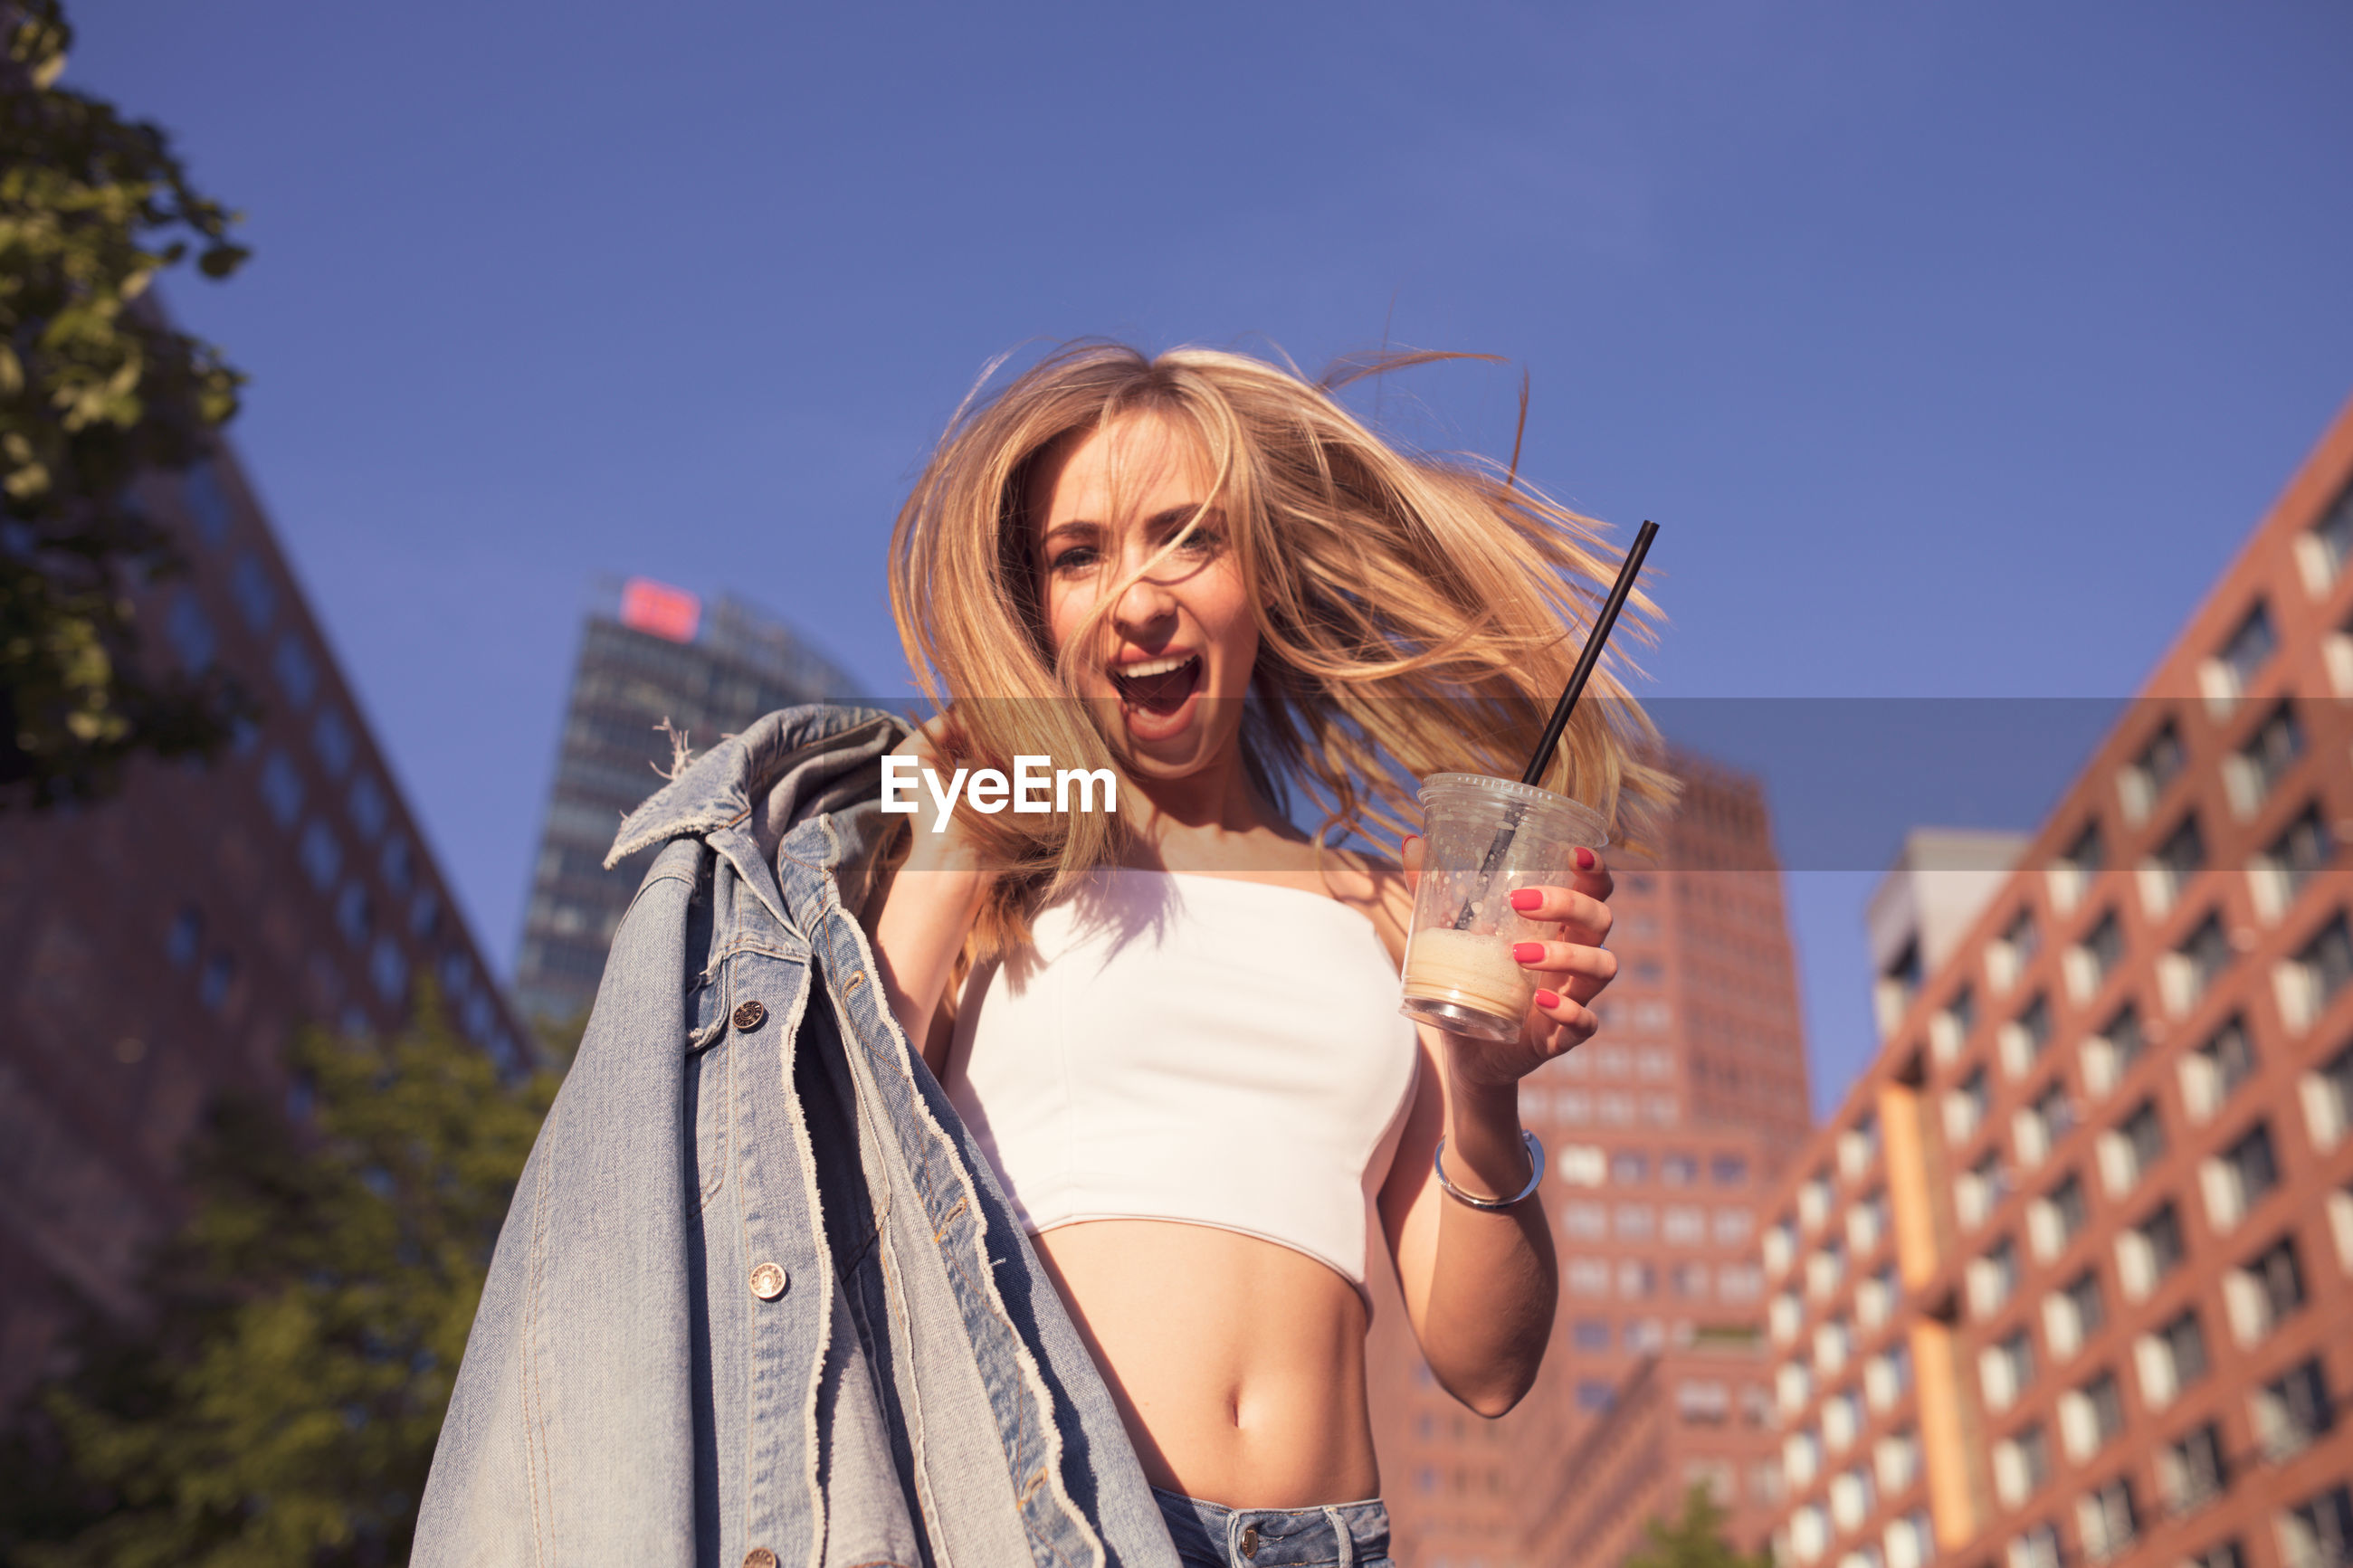 Low angle portrait of woman holding disposable cup against buildings